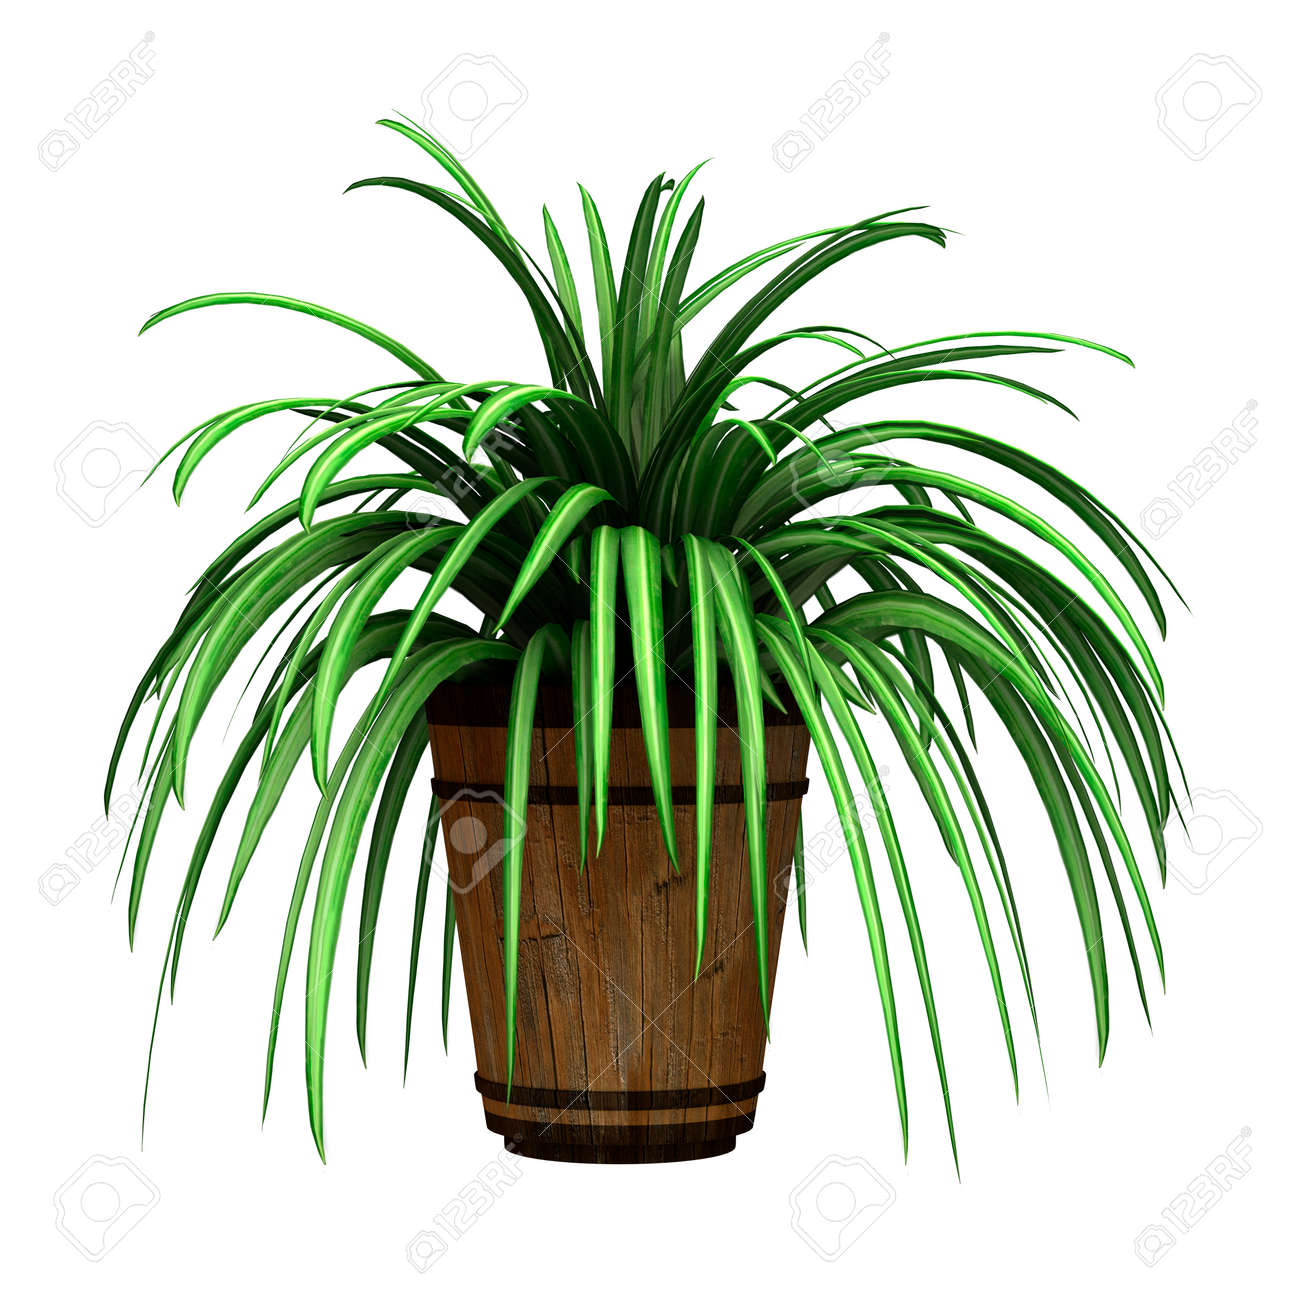 753 spider plant cliparts stock vector and royalty free spider